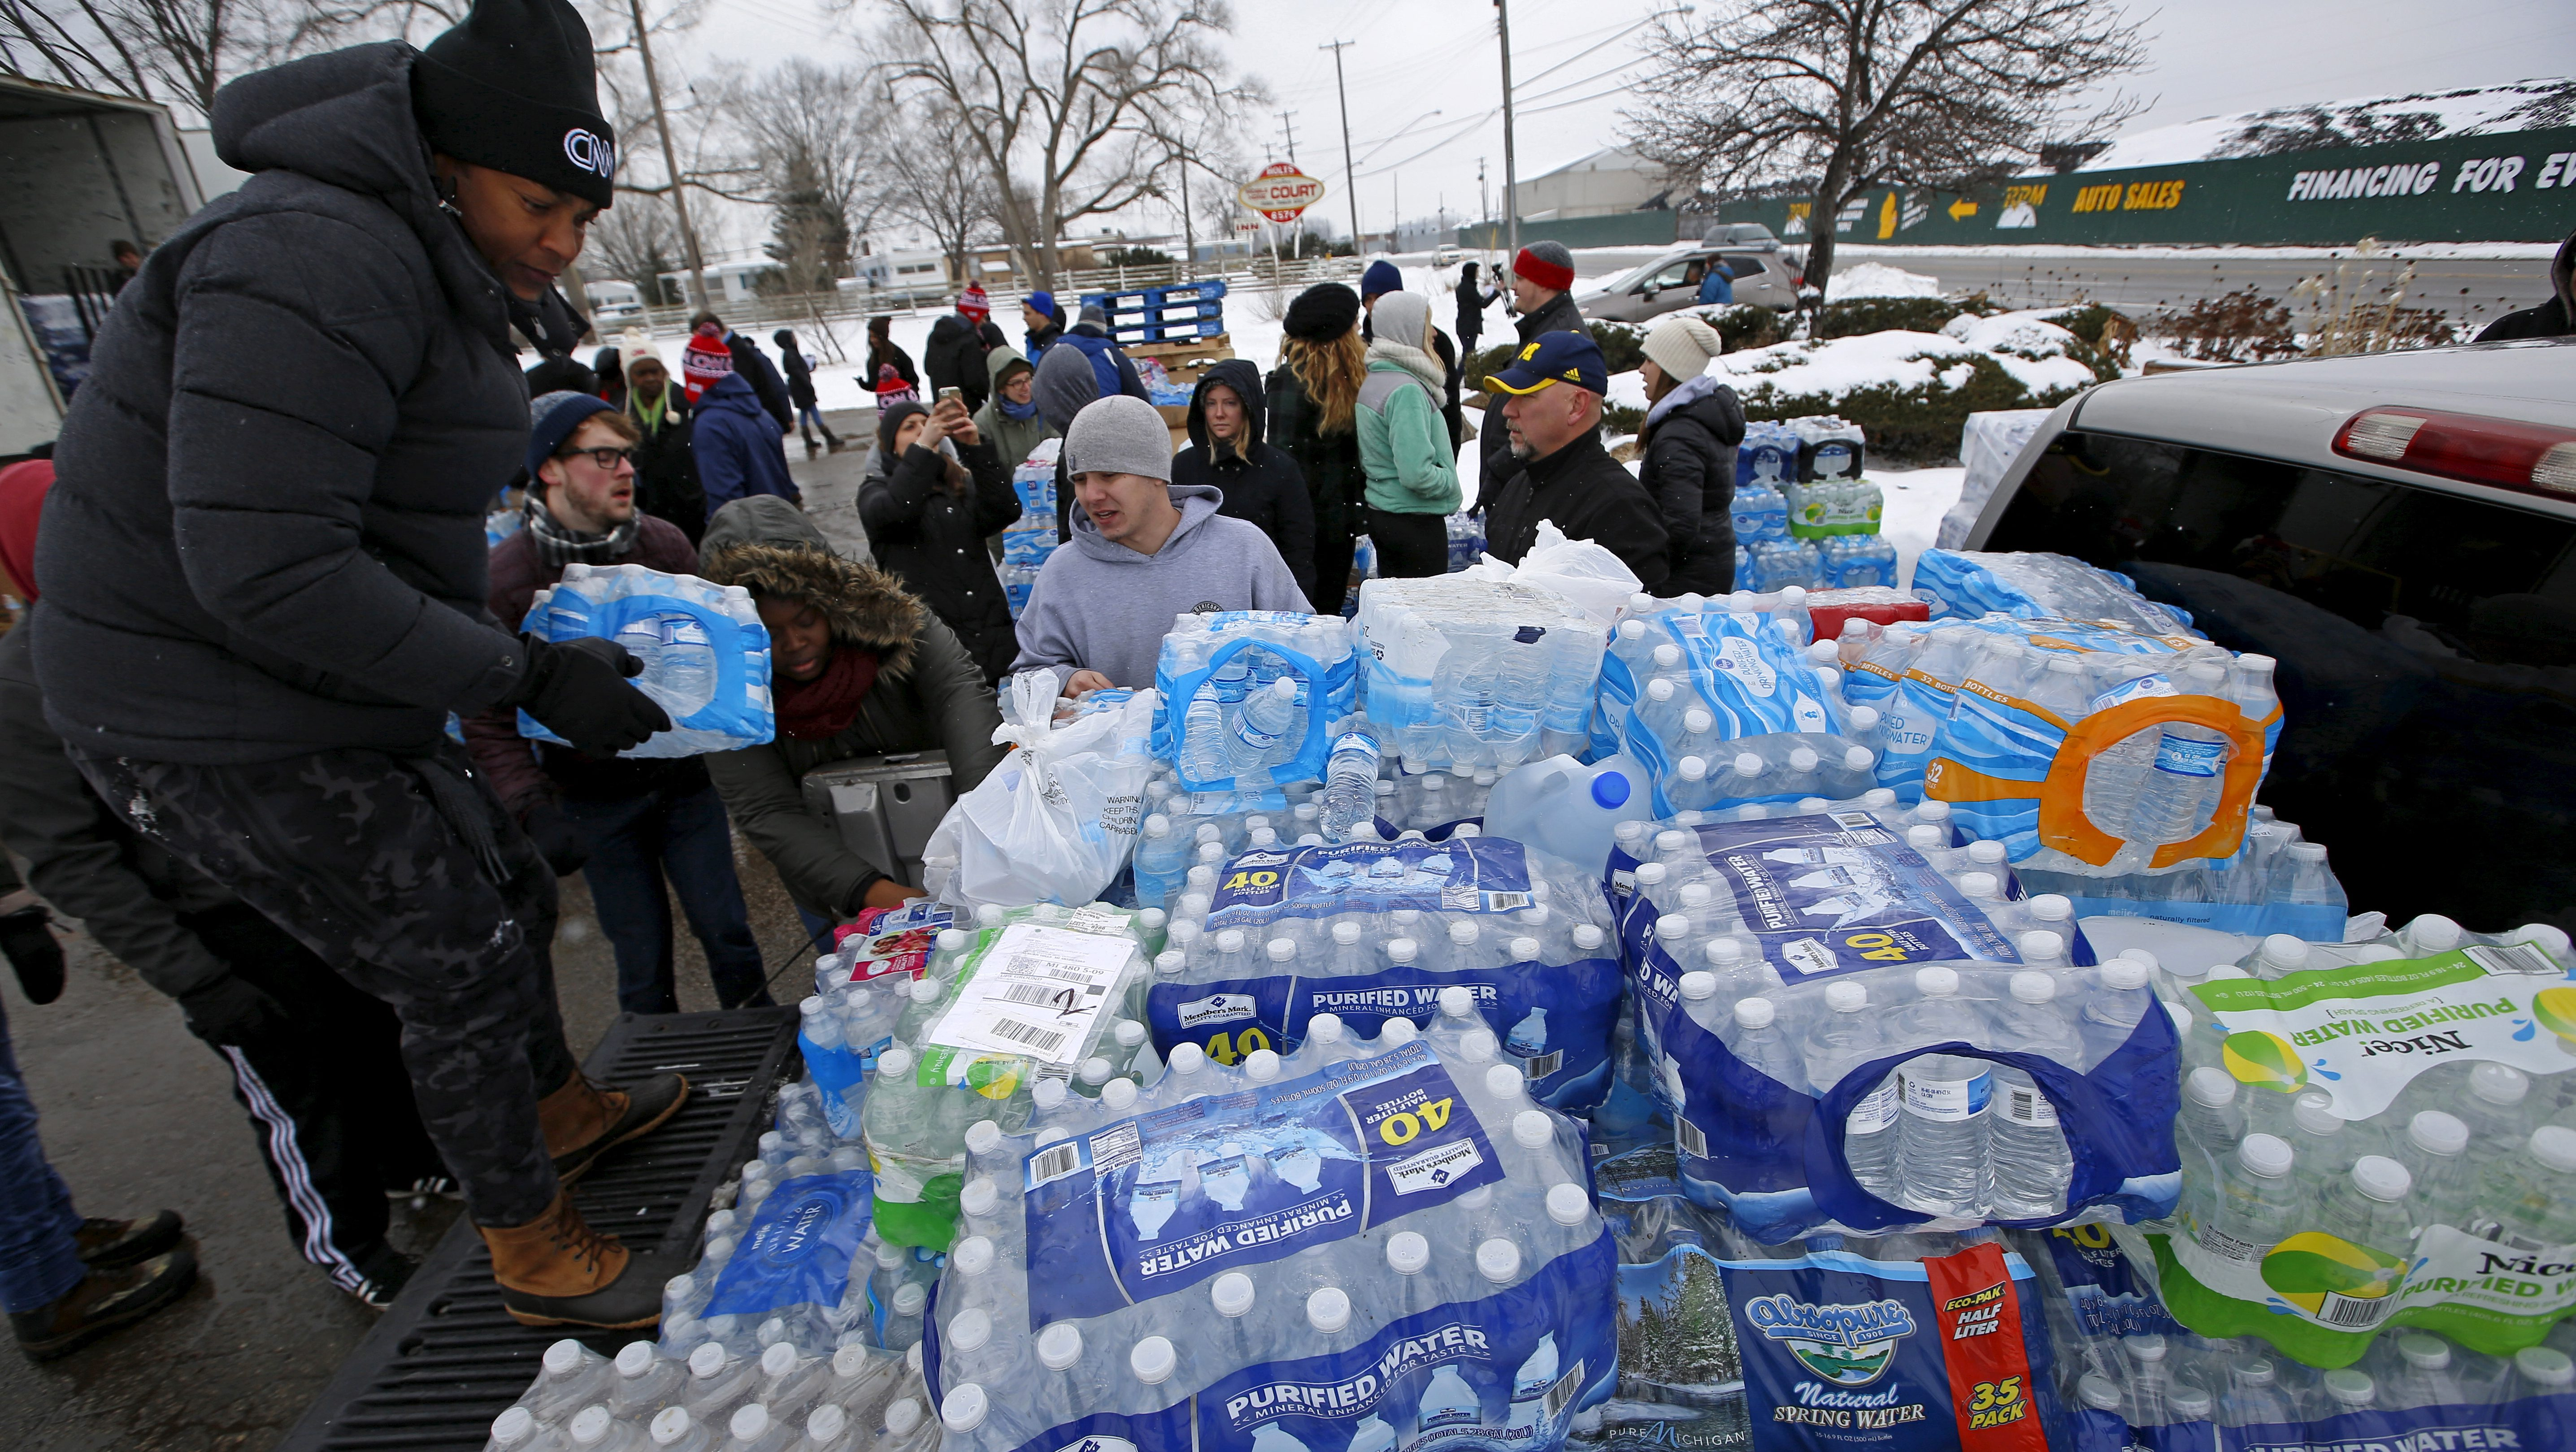 Volunteers distribute bottled water to help combat the effects of the crisis when the city's drinking water became contaminated with dangerously high levels of lead in Flint